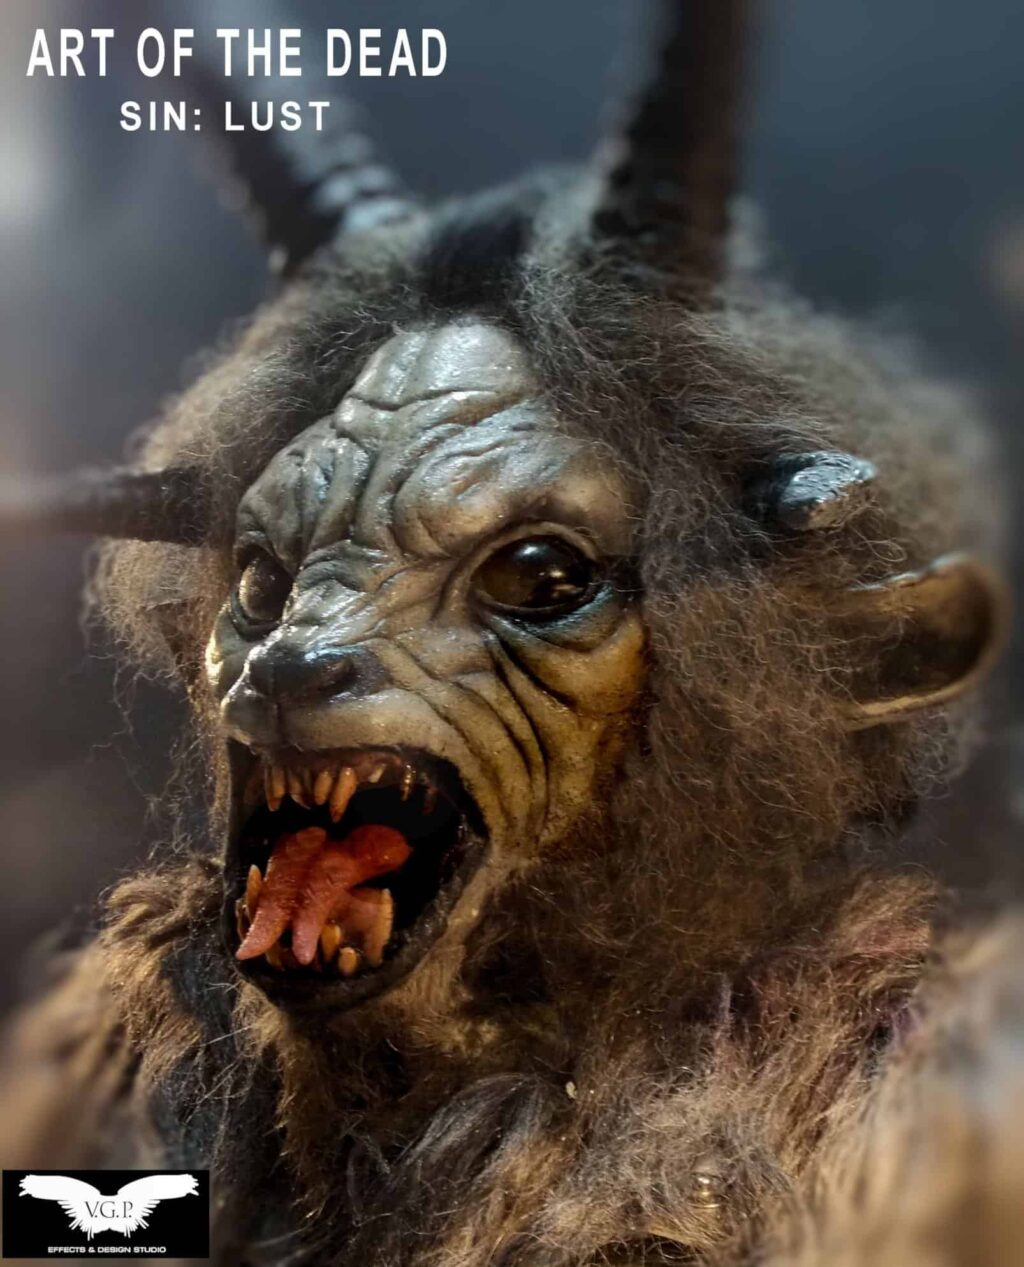 GOAT 2 1024x1267 - Vincent Guastini: From Making Monsters to Directing & Producing + Image Gallery